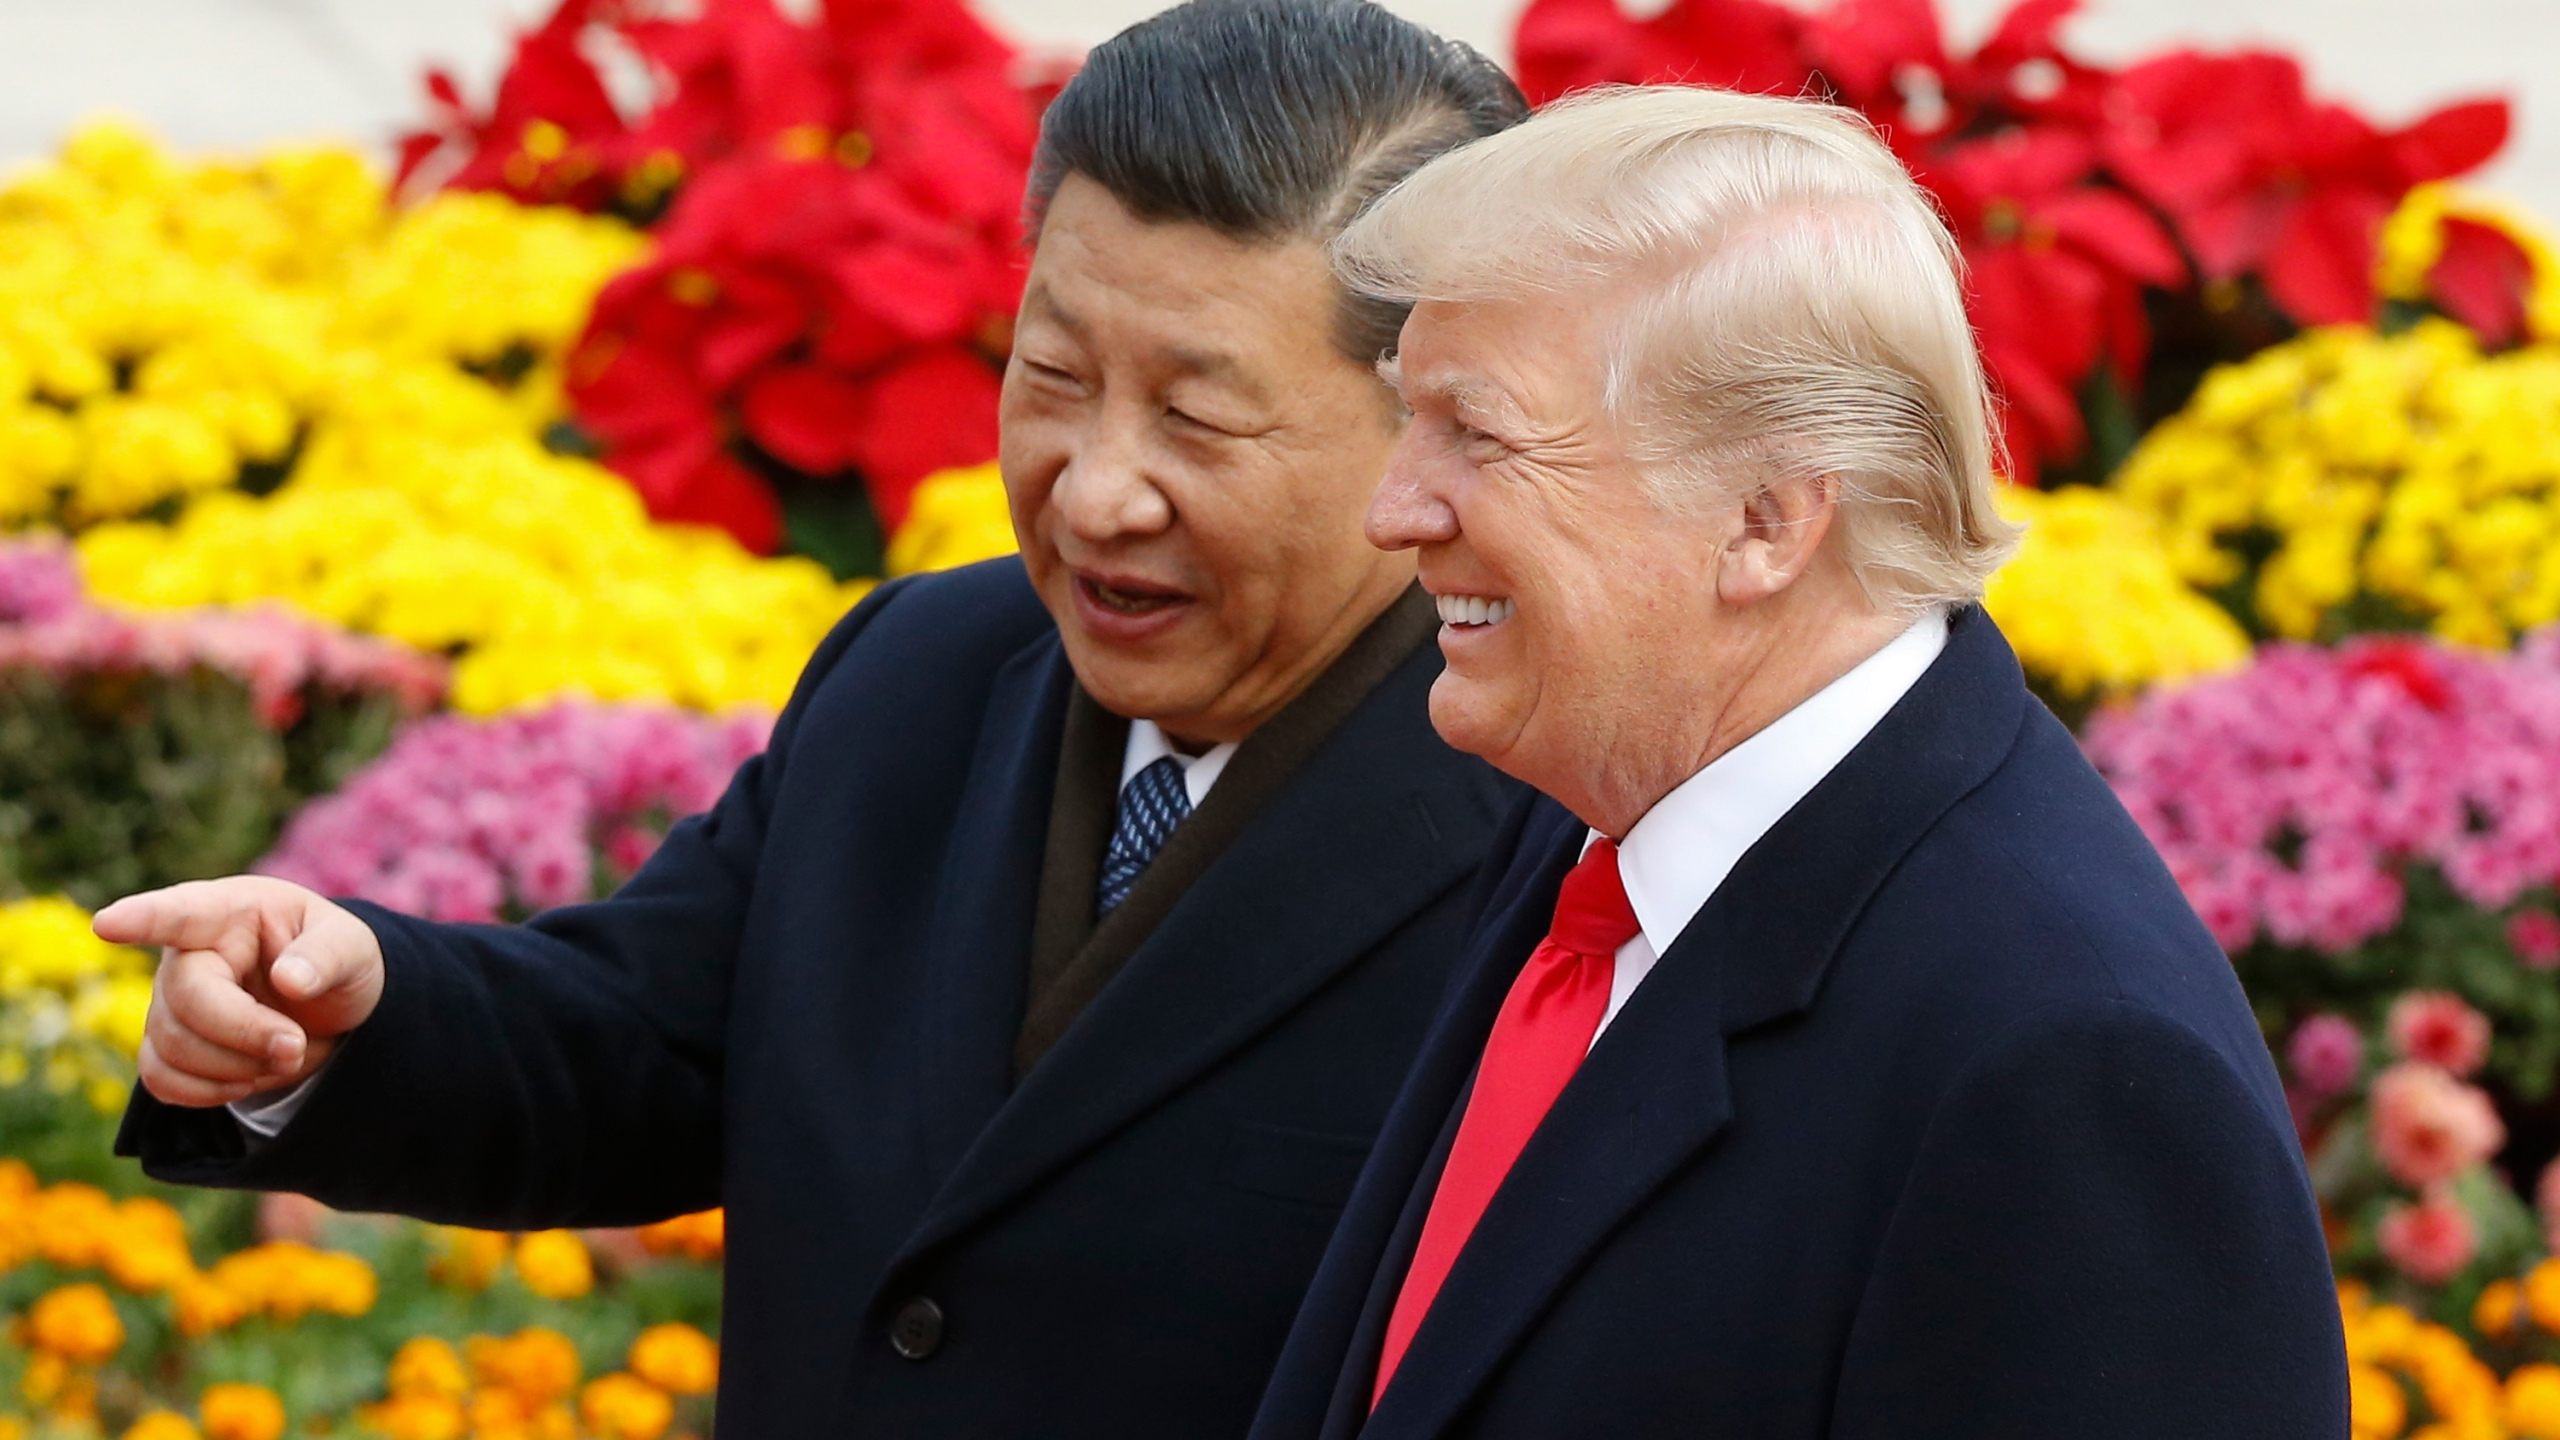 Chinese President Xi Jinping and President Donald Trump attend a welcoming ceremony Nov. 9, 2017, in Beijing, China. (Credit: Thomas Peter / Getty Images)